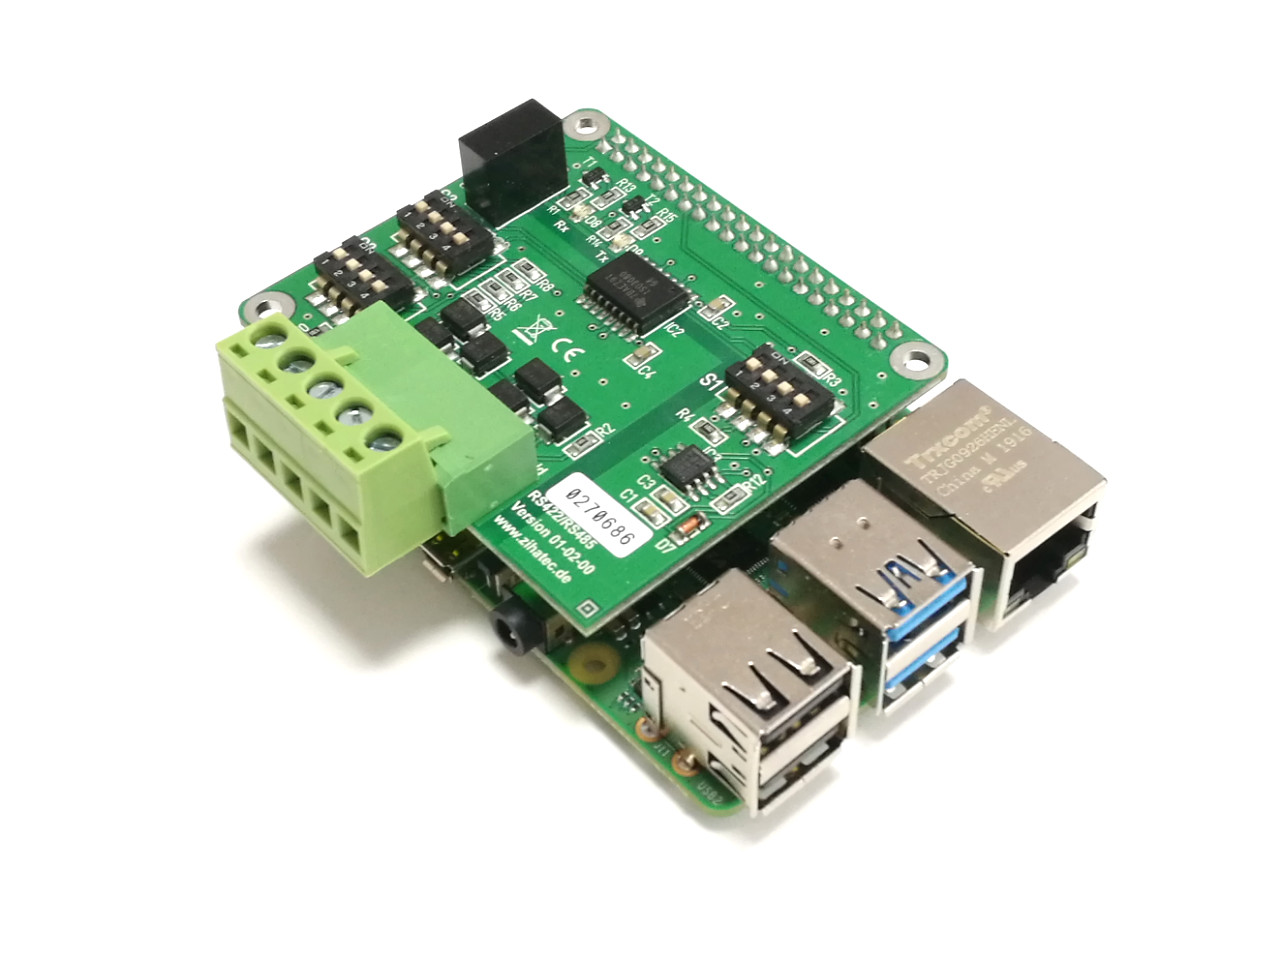 RS422/485 HAT (standard) with Raspberry Pi 4B